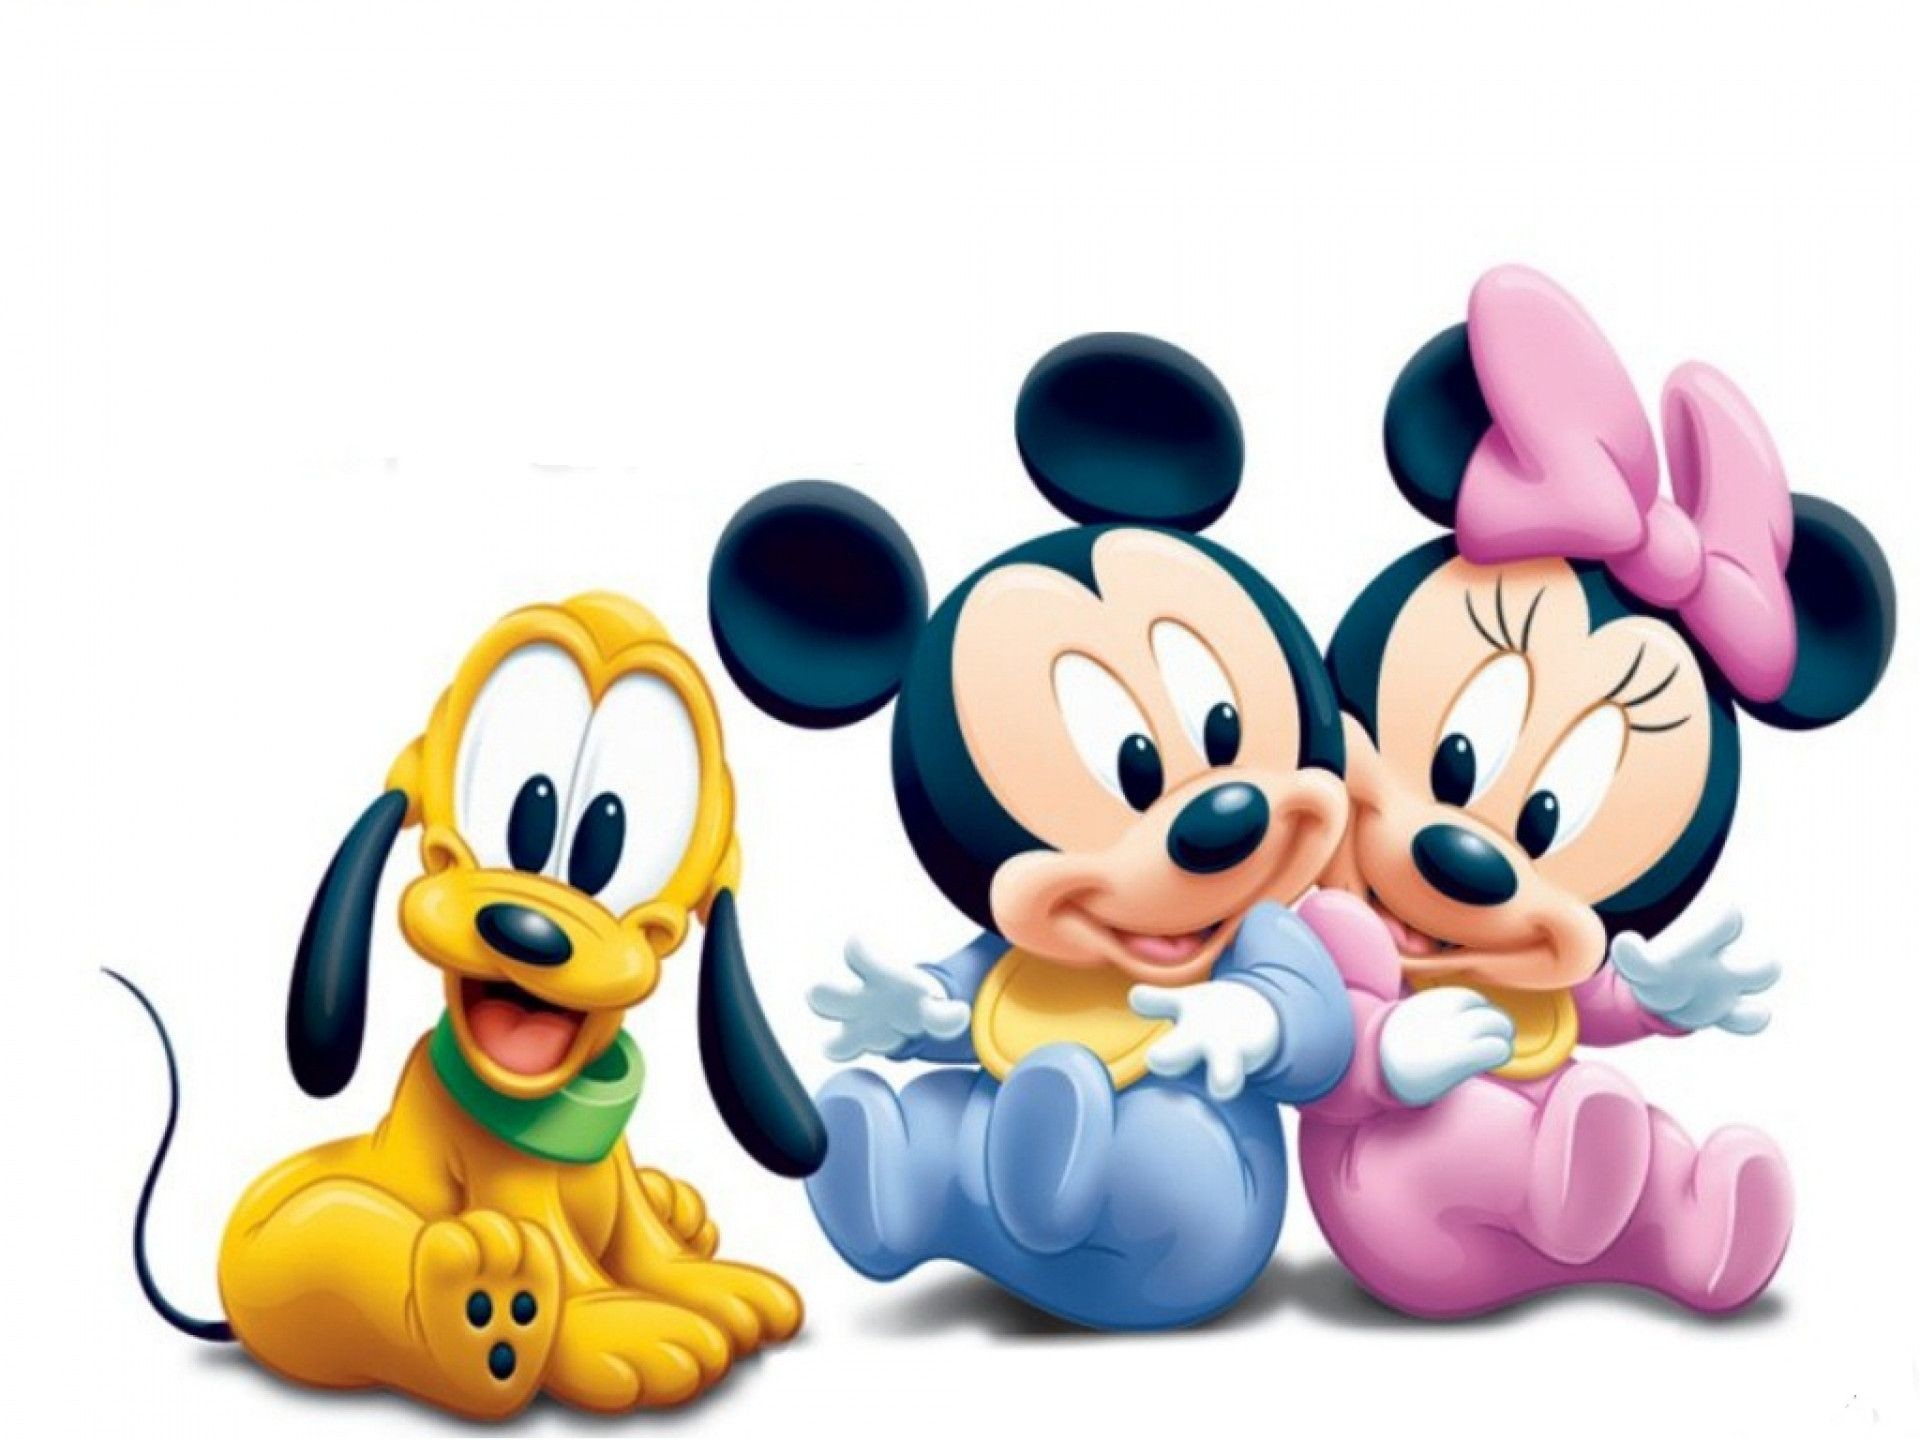 mickey mouse wallpaper desktop (66+ images)